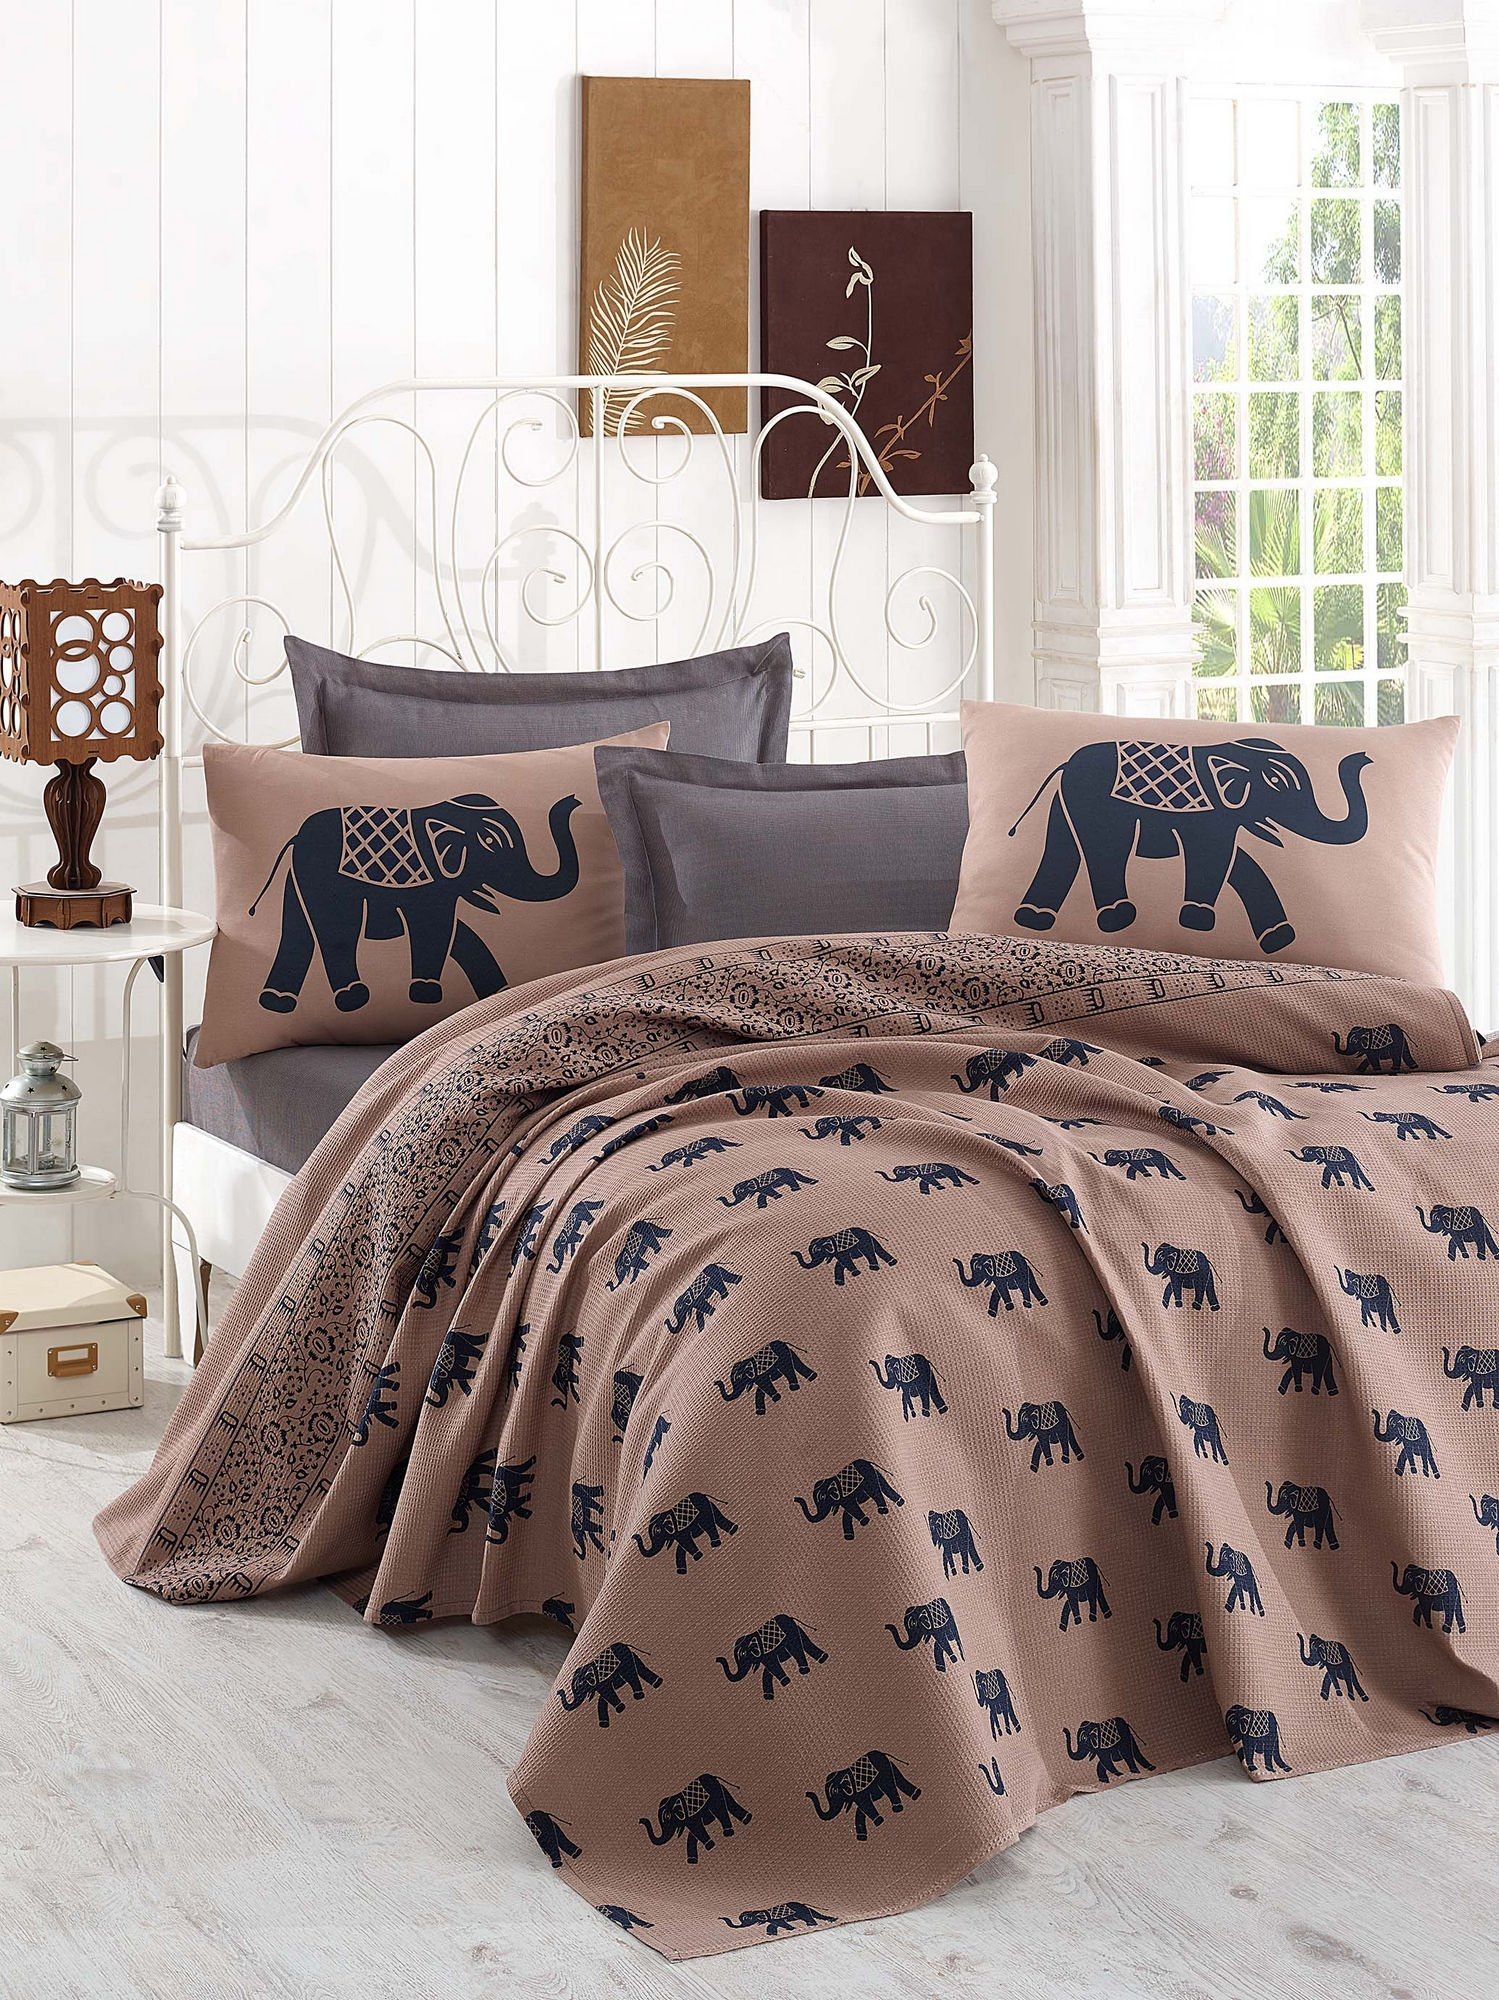 LaModaHome Luxury Soft Colored Full and Double Bedroom Bedding 100% Cotton Coverlet (Pique) Thin Coverlet Summer/Elephant Animal Safari Big Grey and Brown Design /